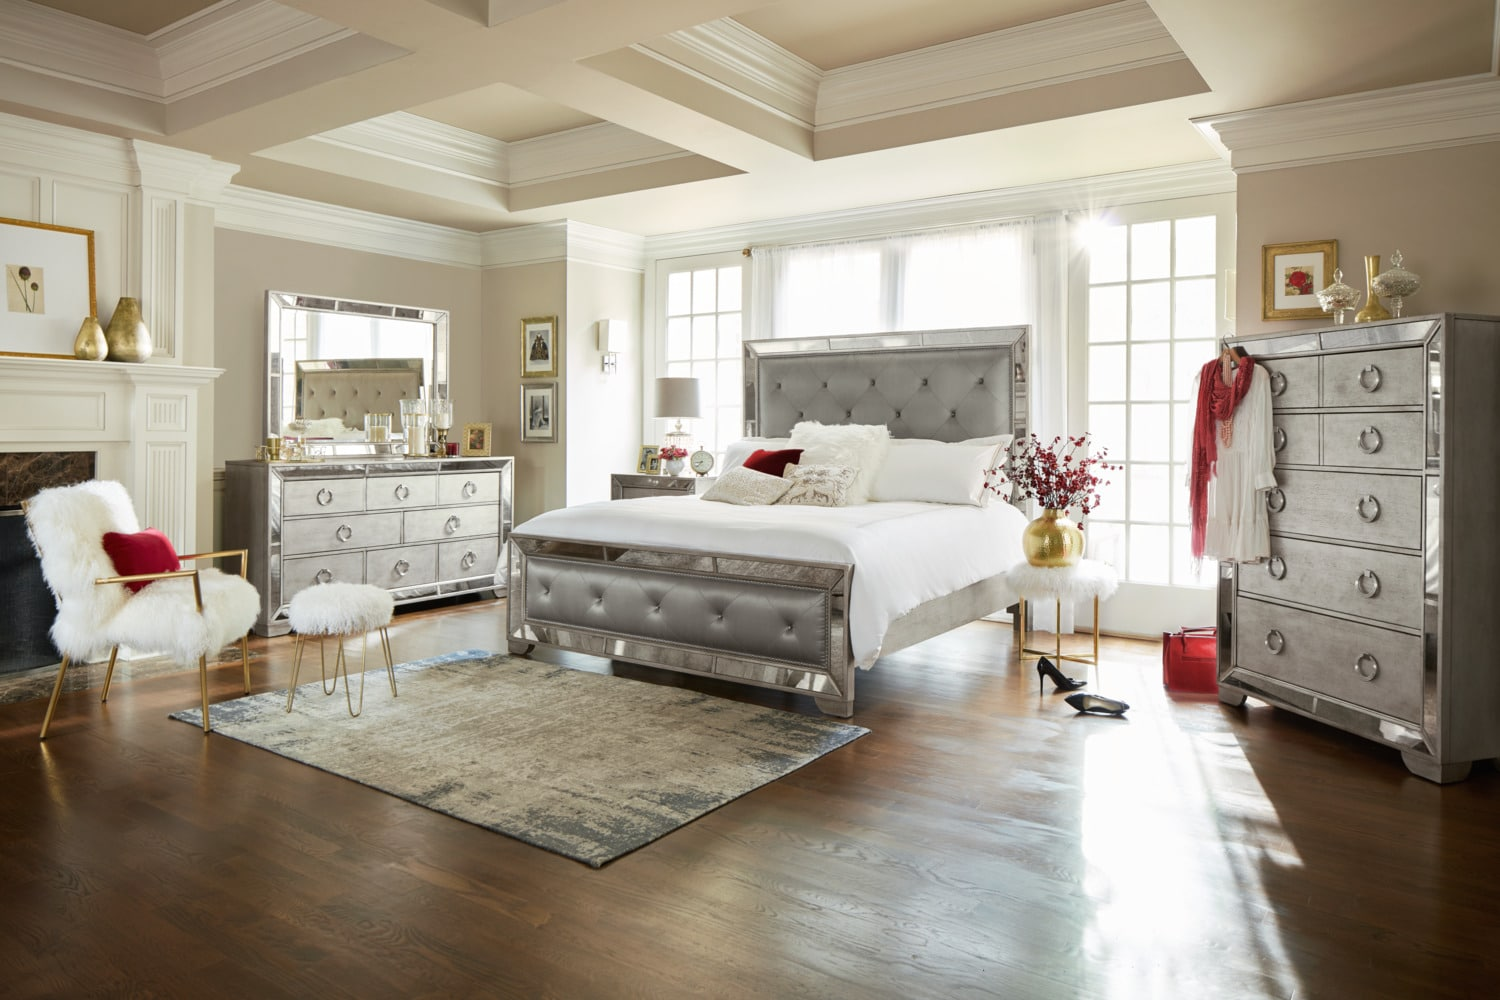 High Quality The Angelina Collection   Metallic Design Inspirations